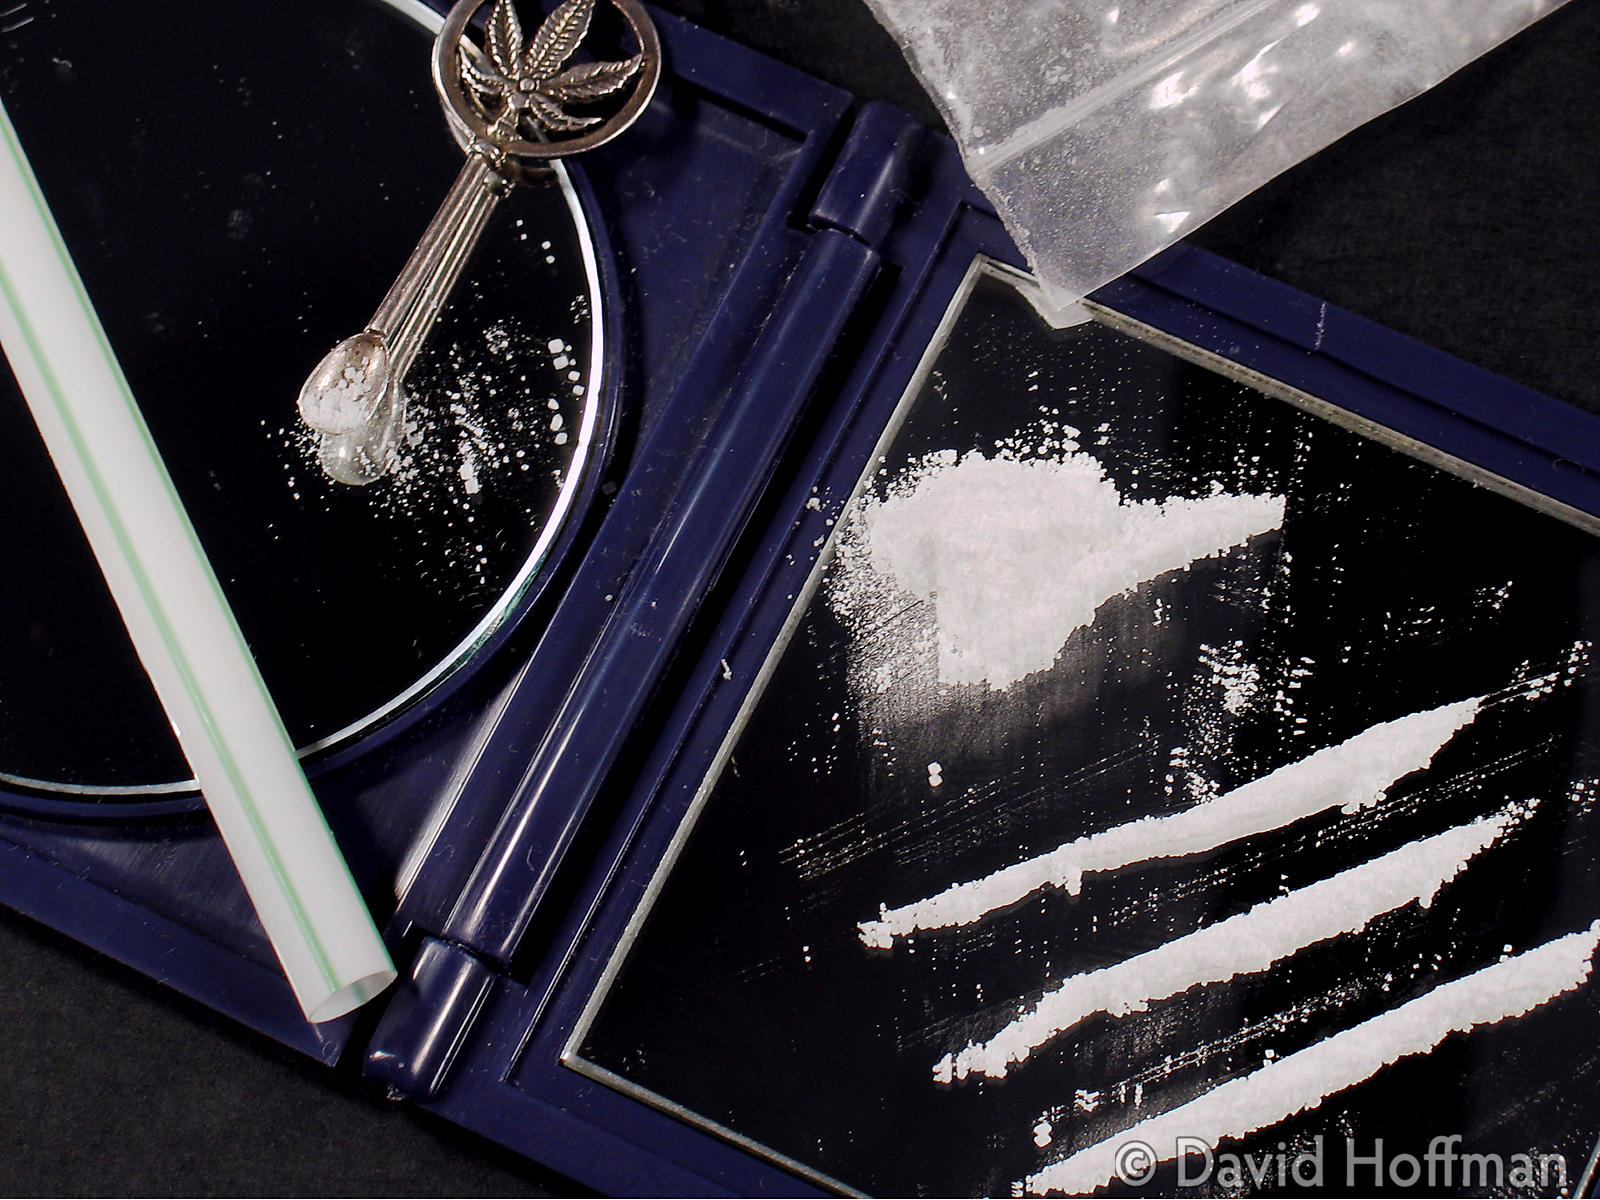 Lines of powdered cocaine ready for sniffing.